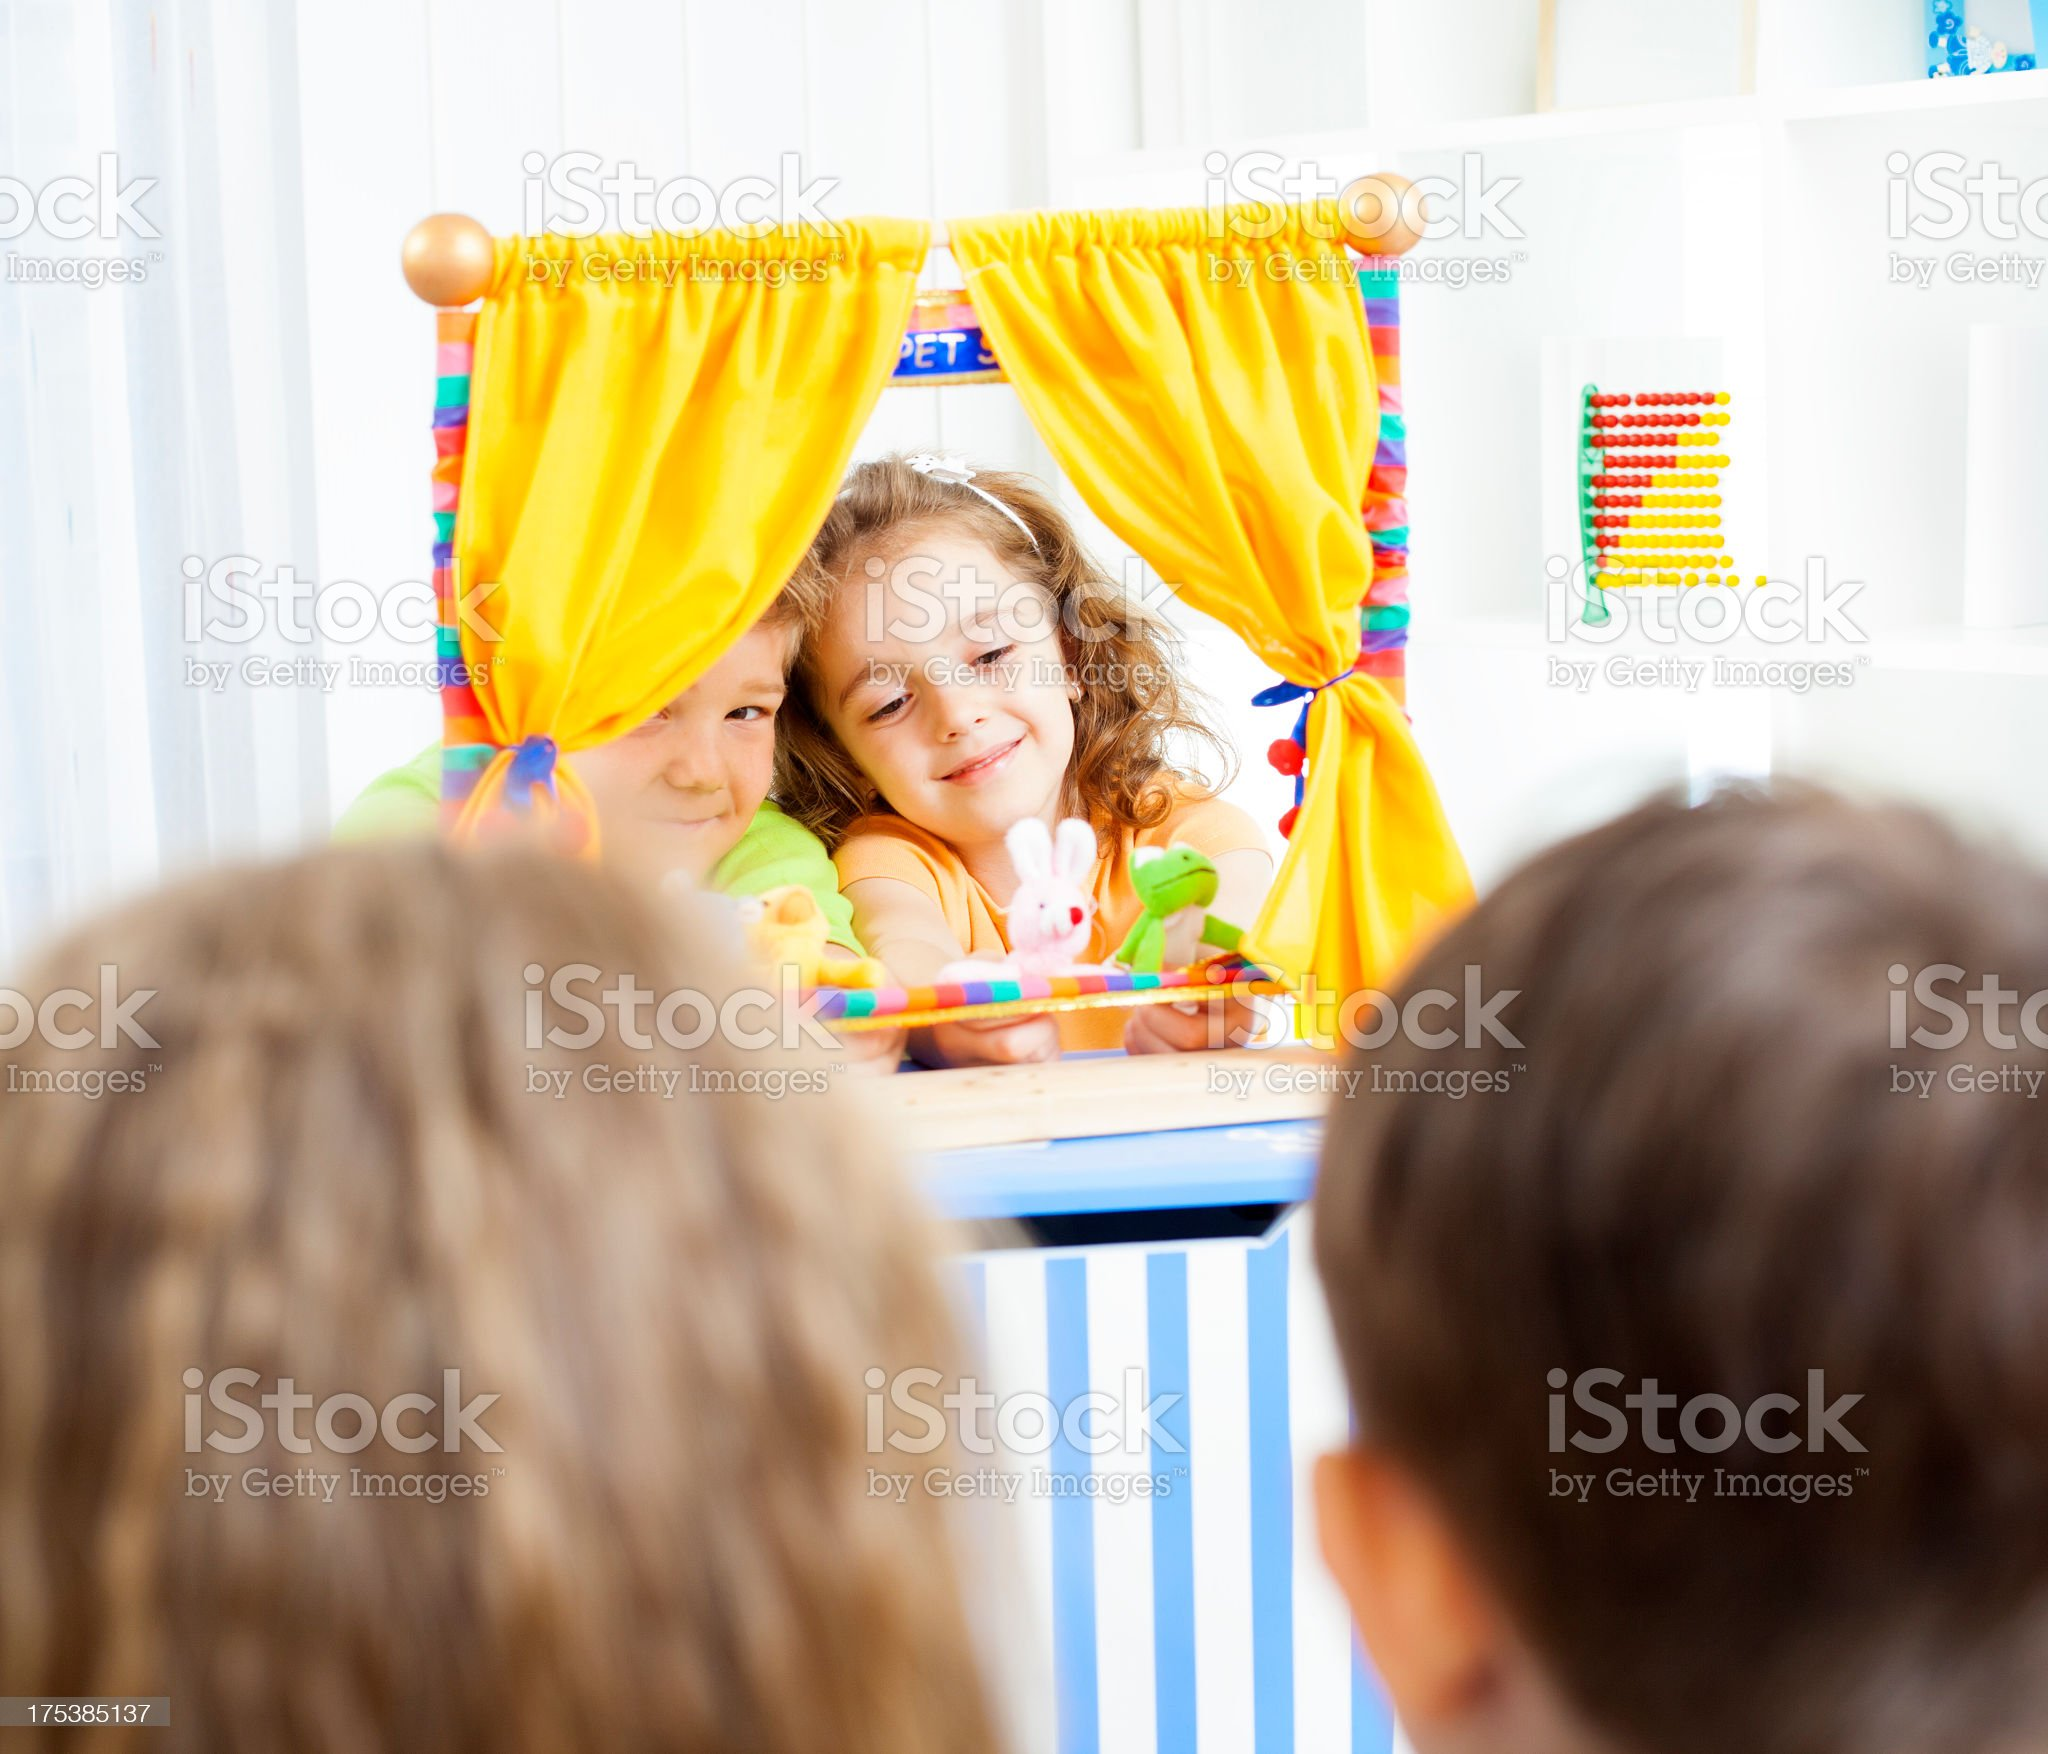 Children Playing Puppet Show. royalty-free stock photo